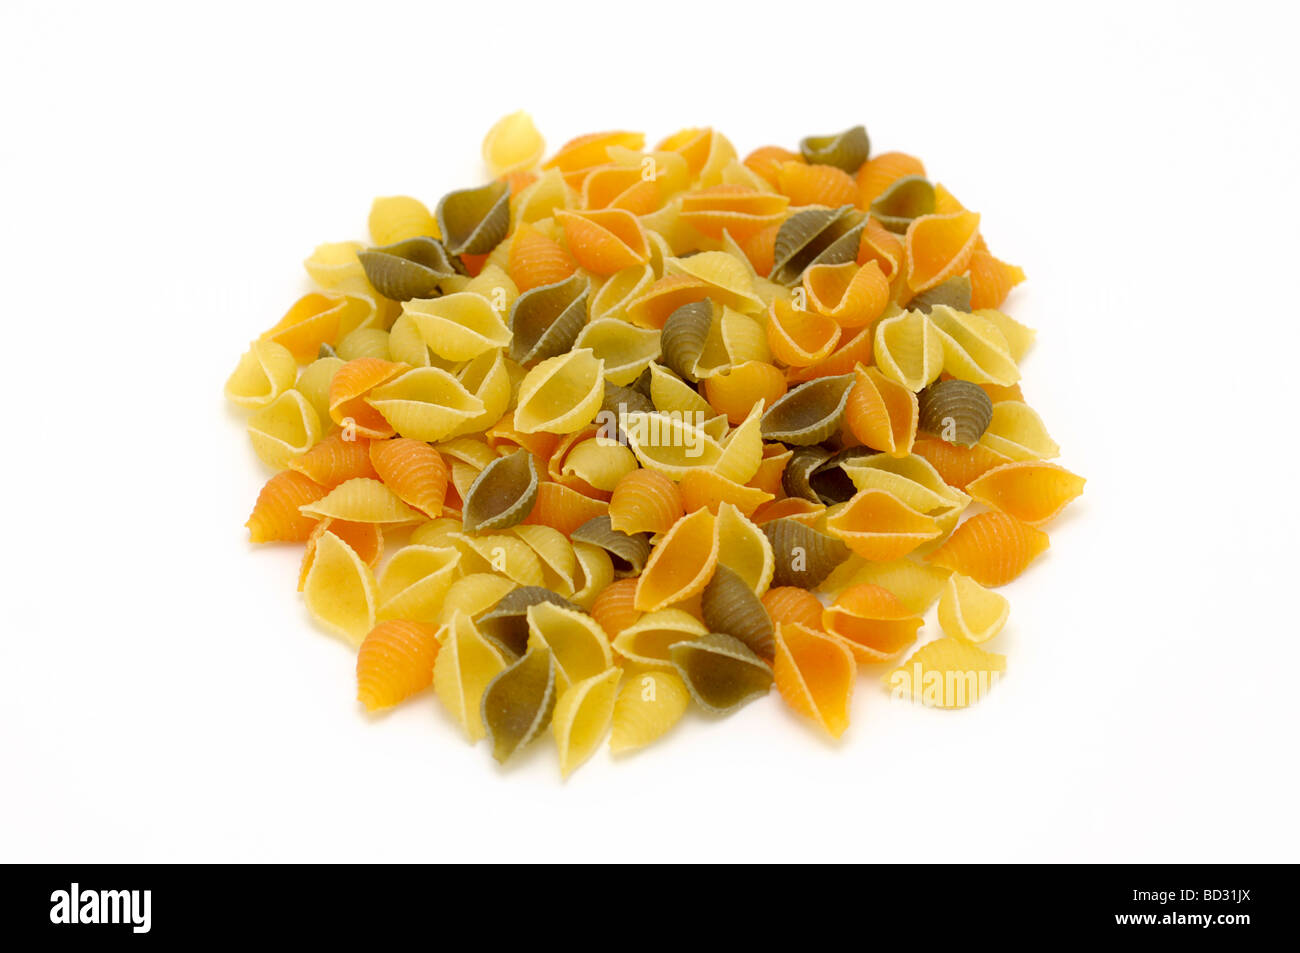 Pasta Shells, Dry Uncooked Pasta - Stock Image